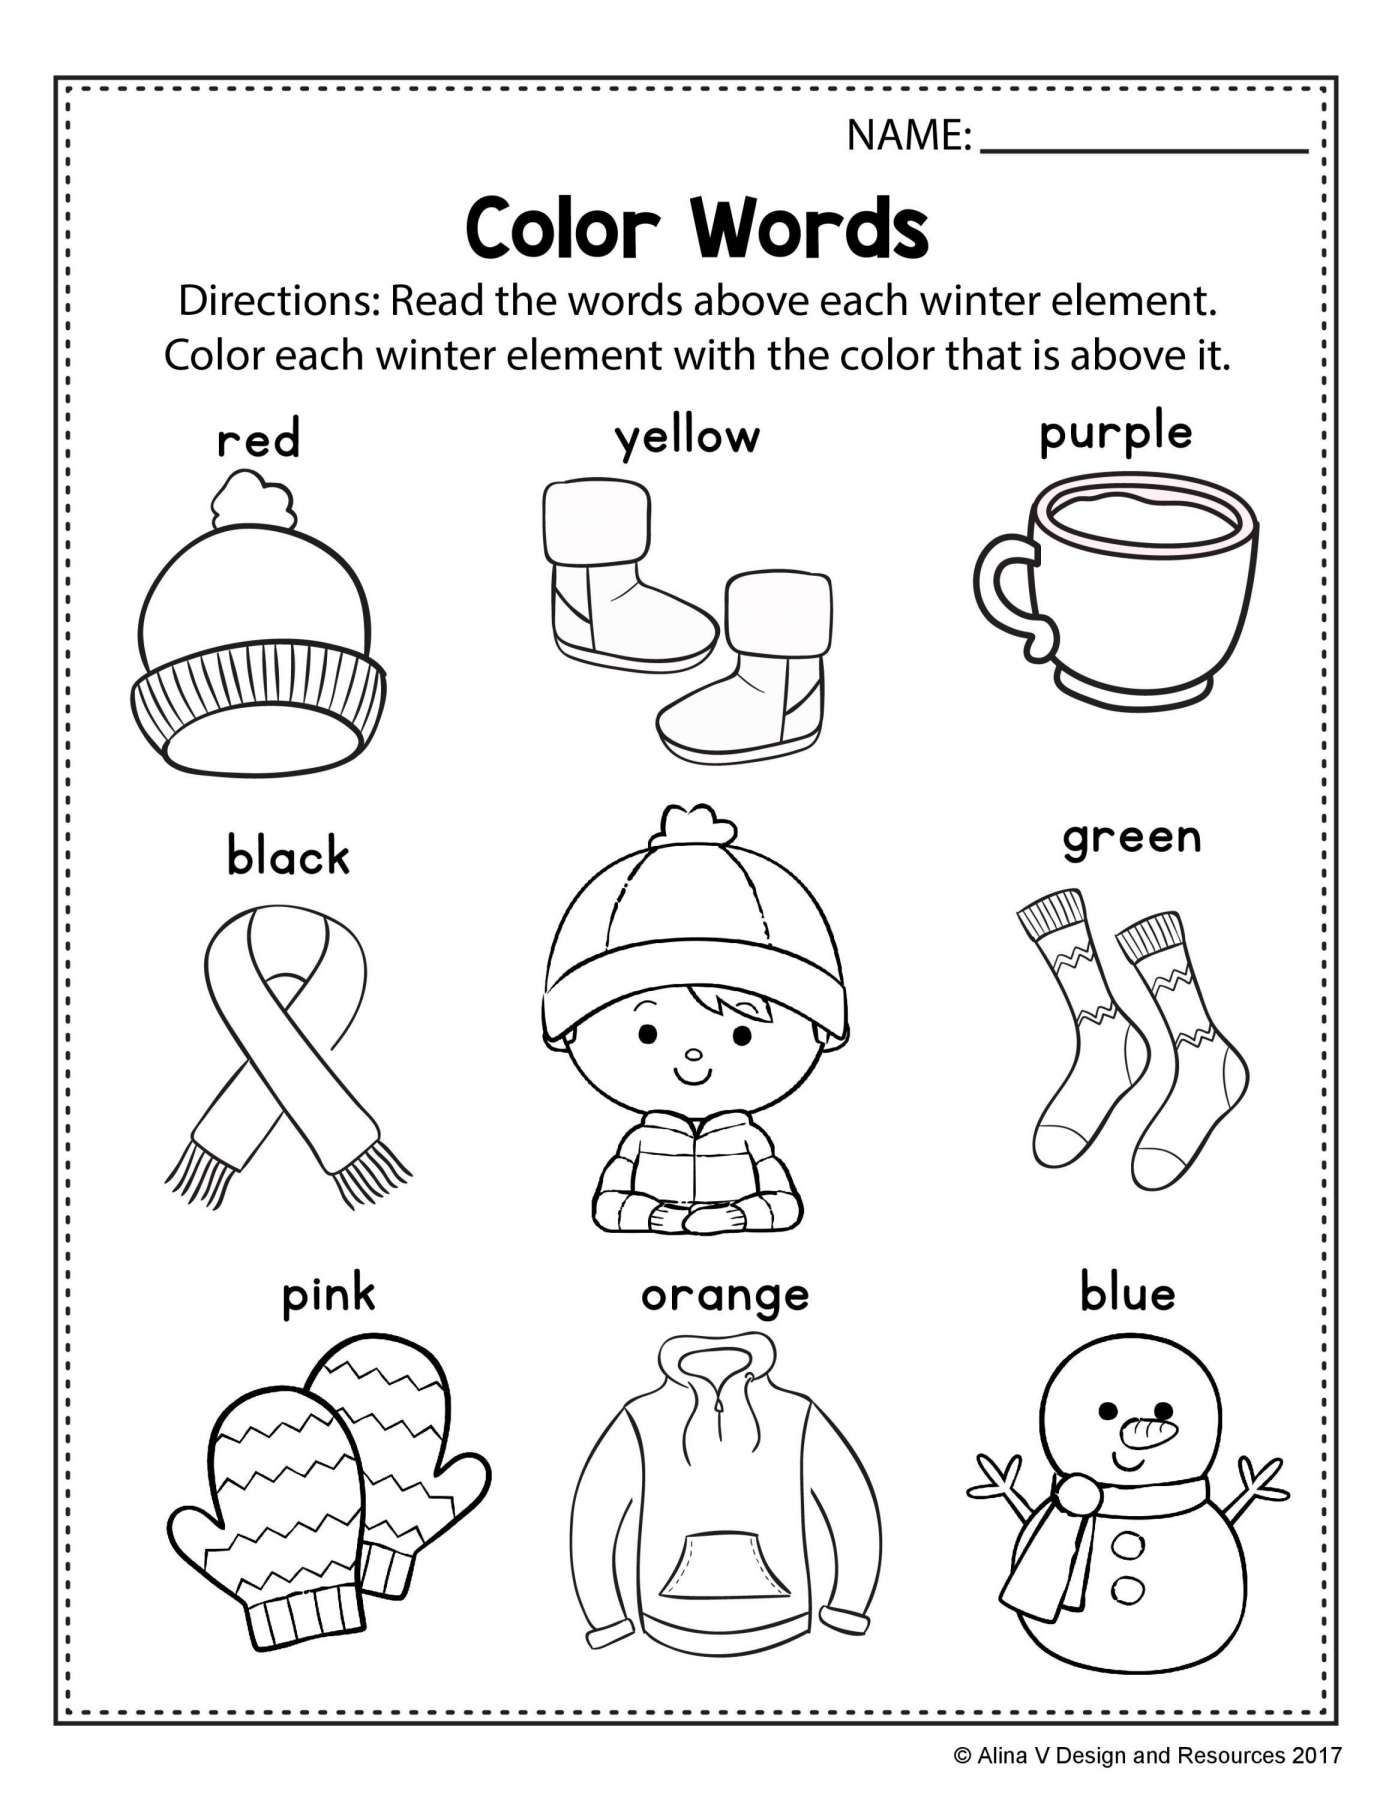 10 Winter Worksheets For Preschoolers